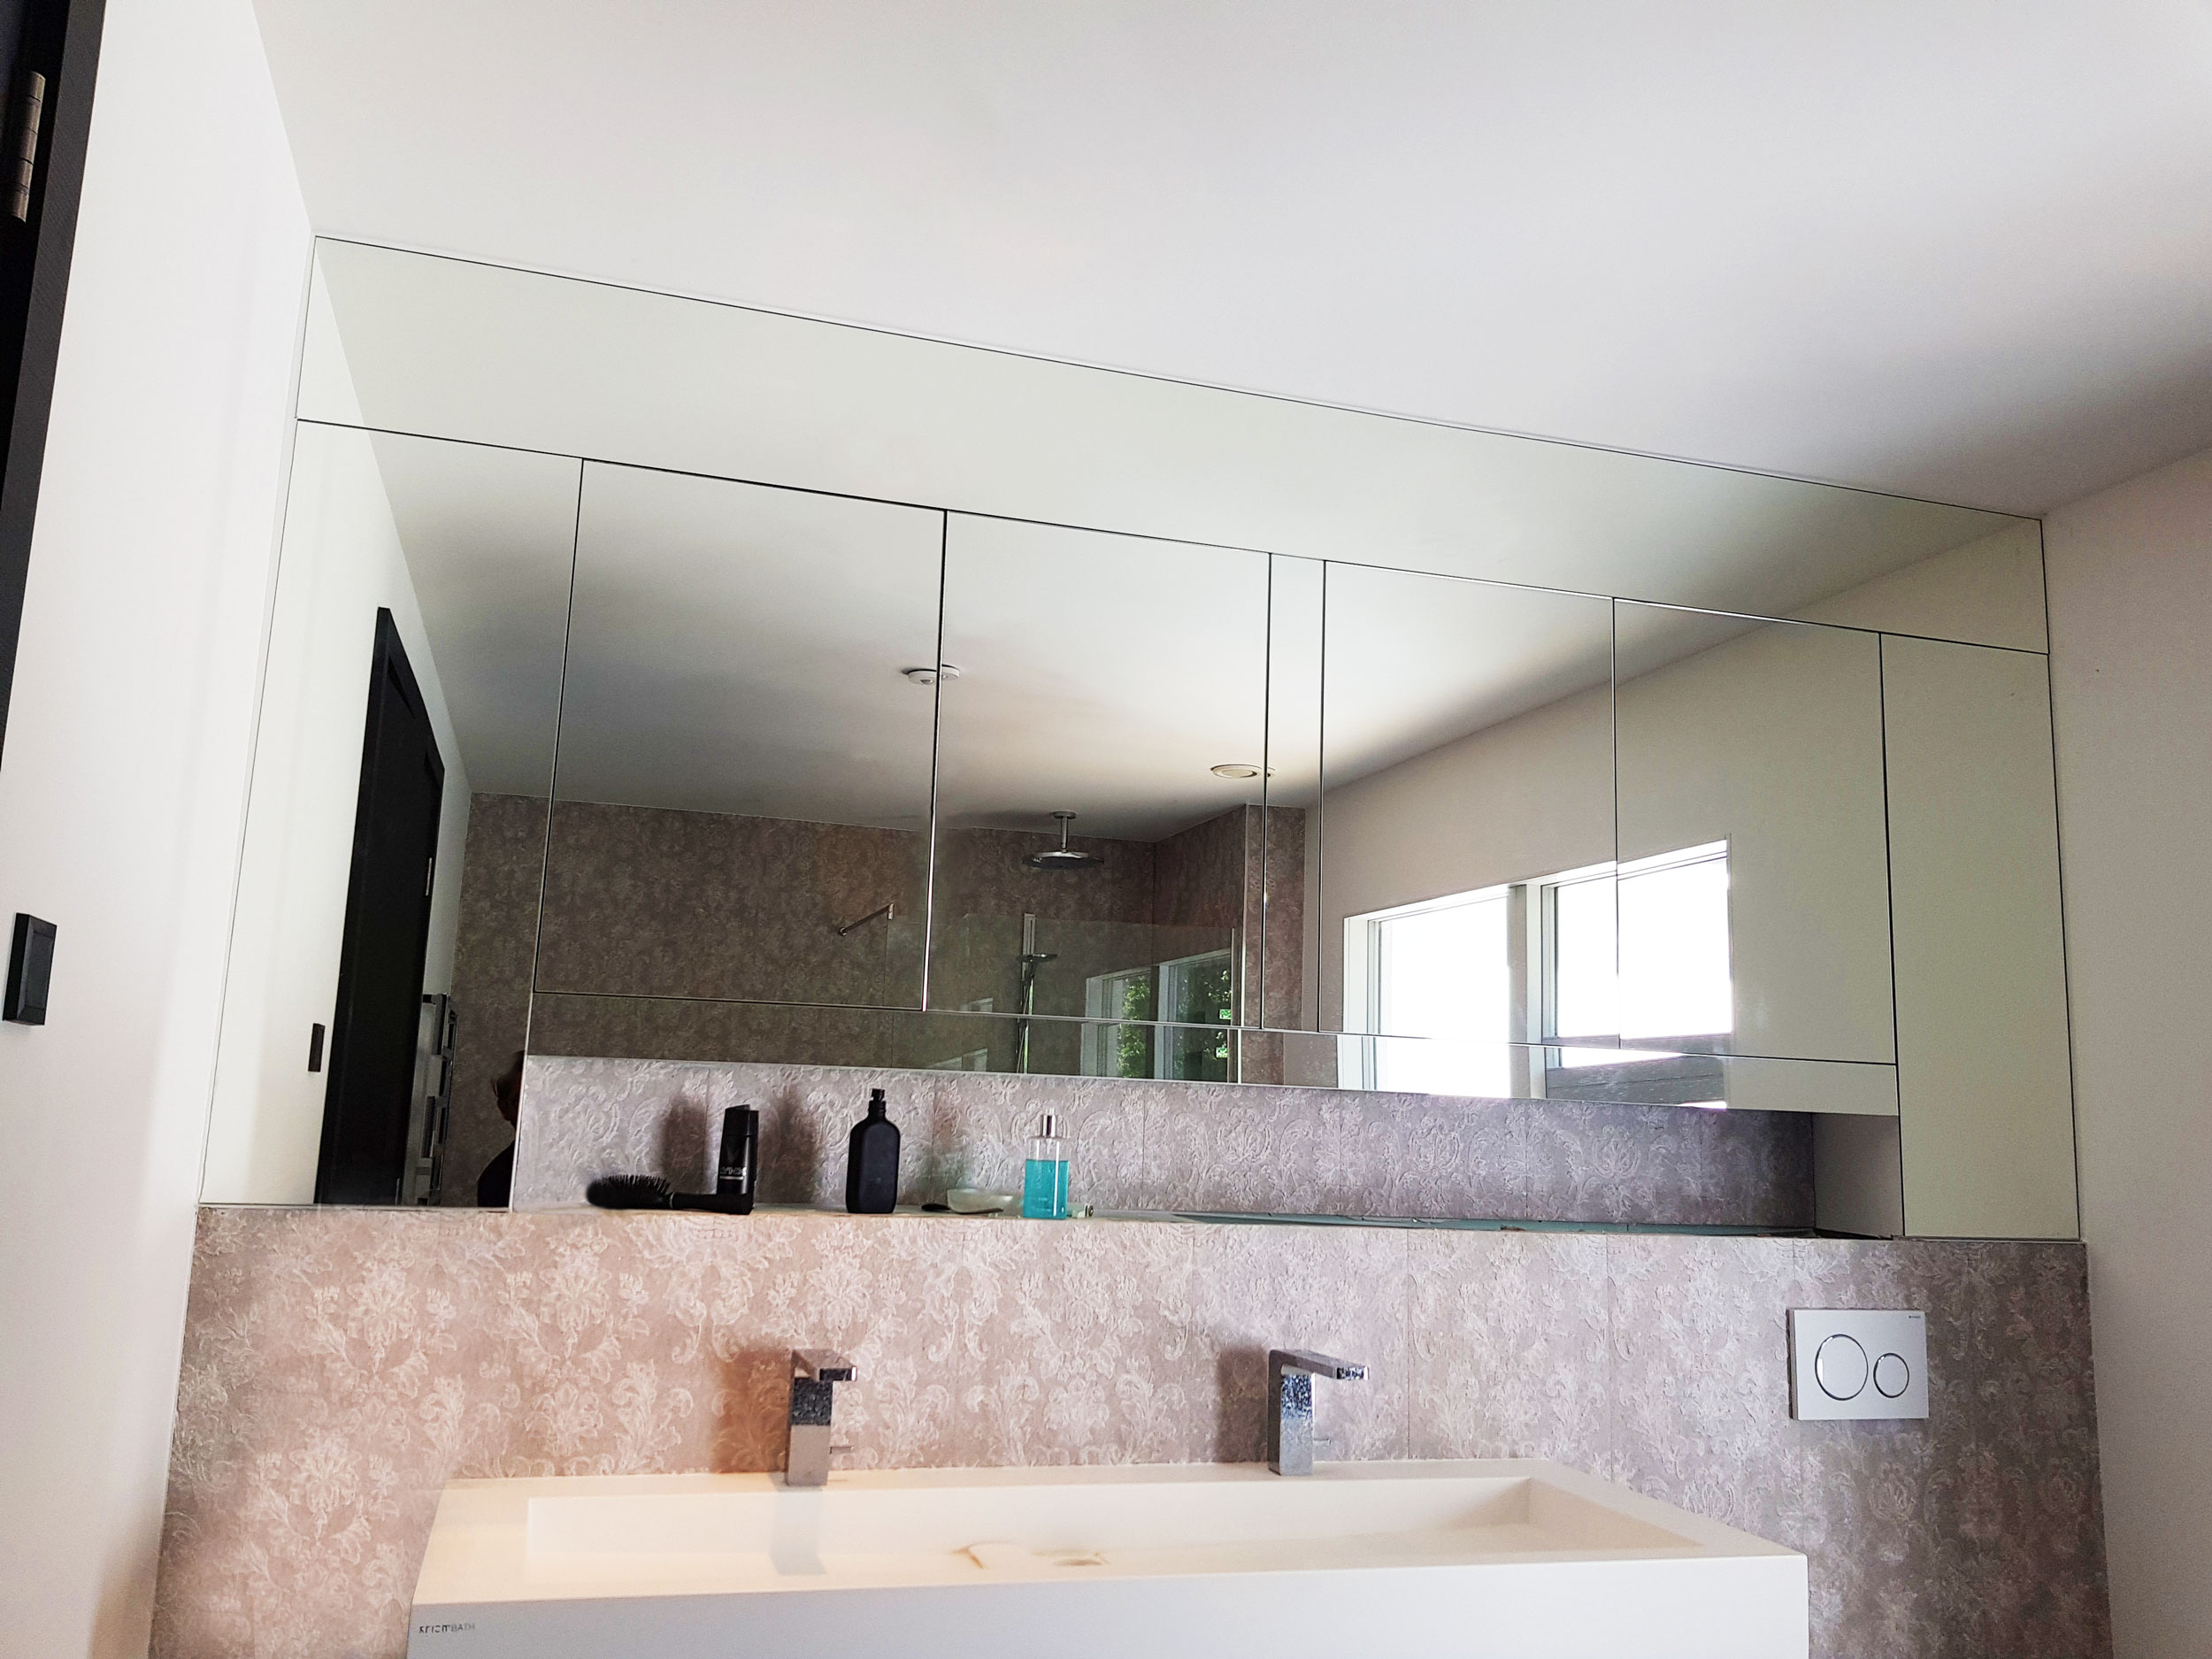 Bathroom cabinets mirror cladding